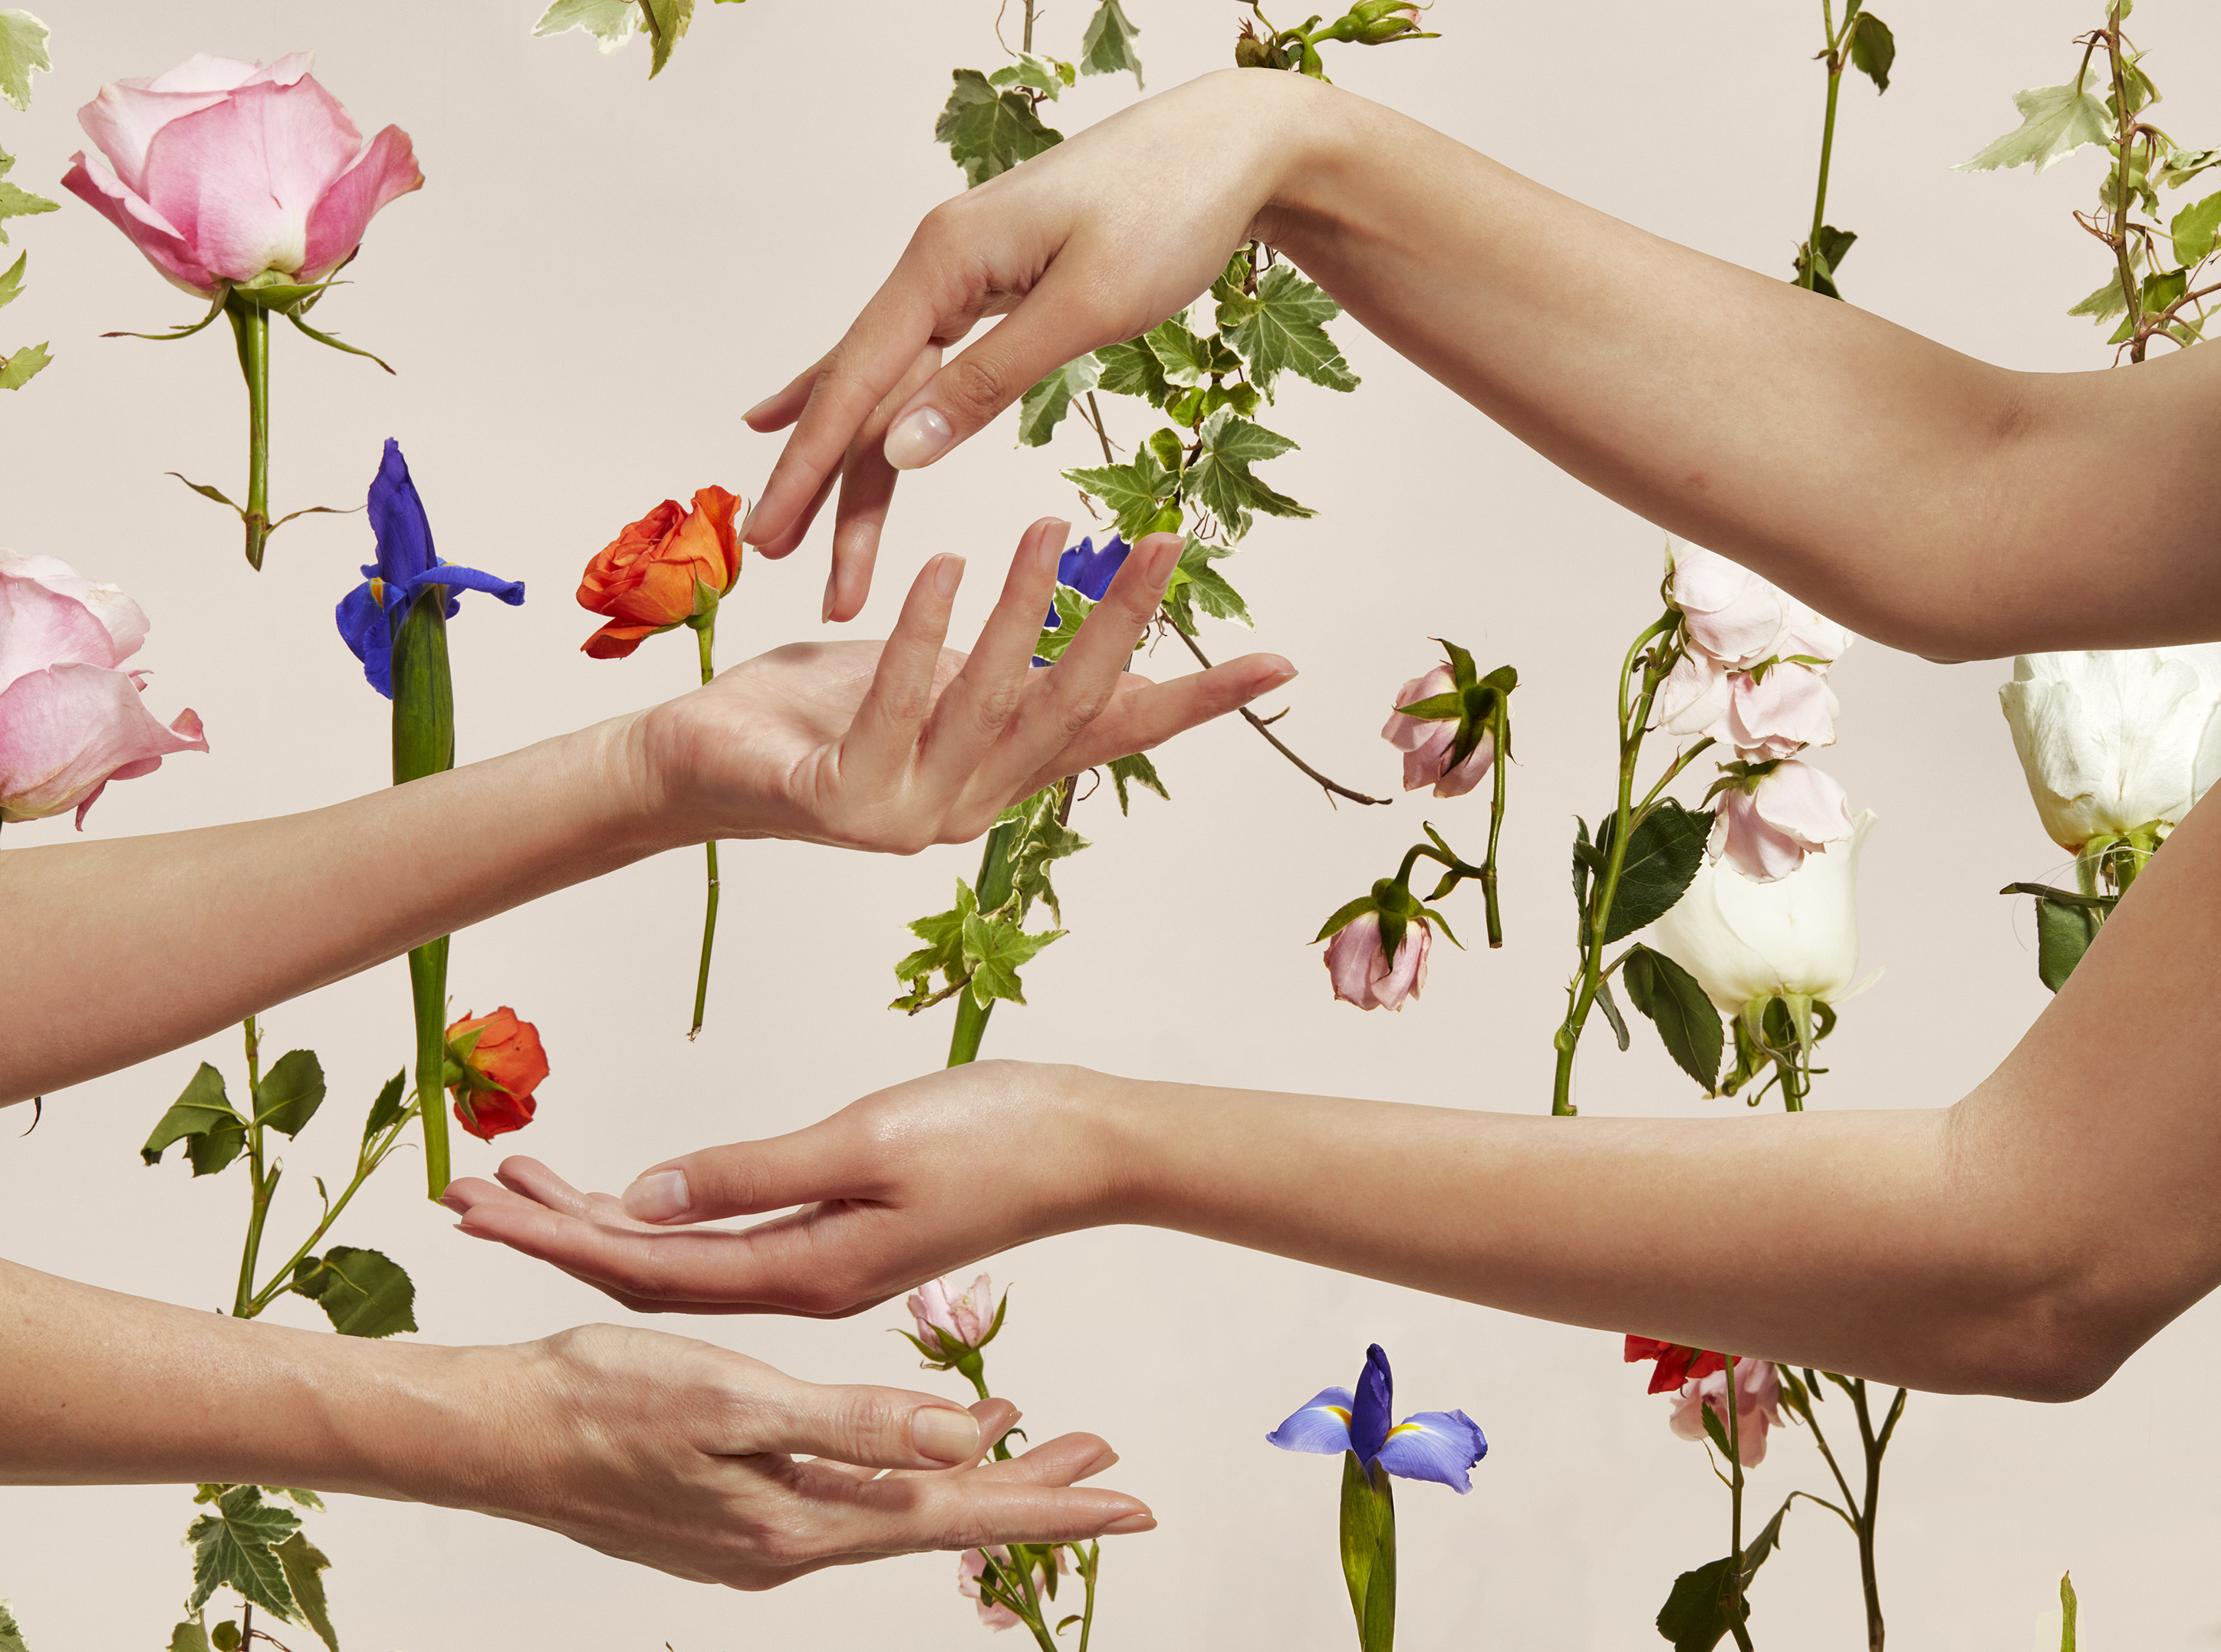 hands in front of a flower background